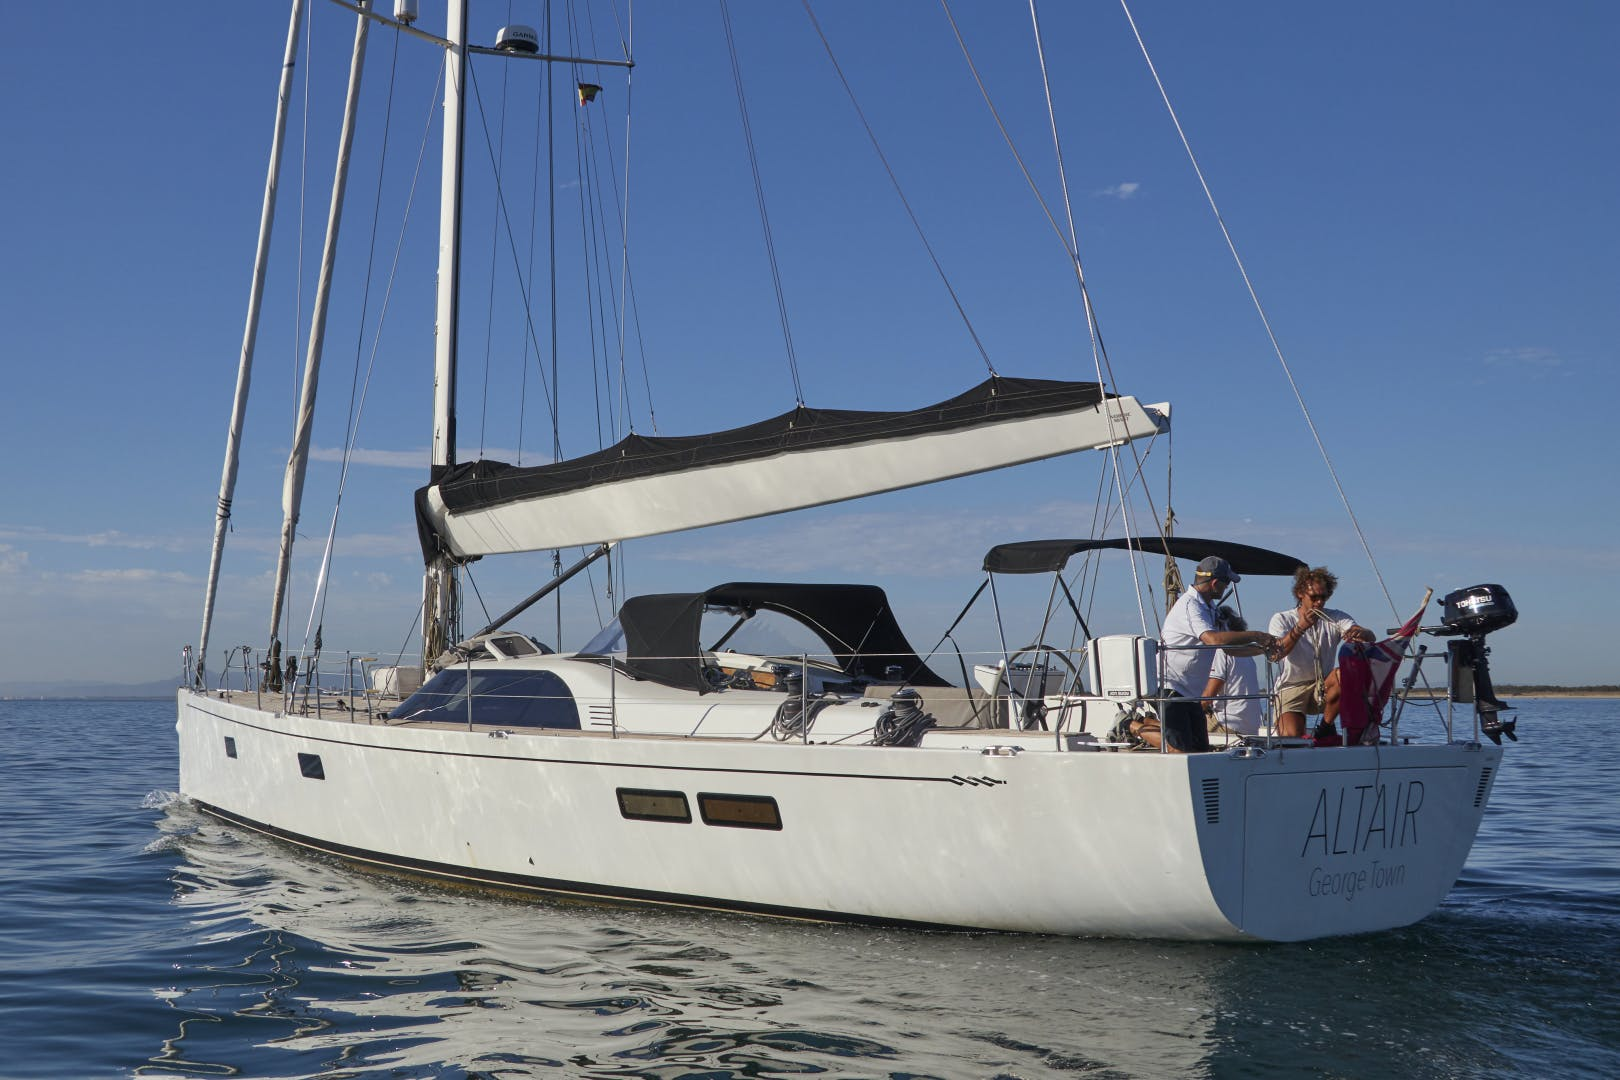 2010 Cantiere Pilot Sarl 65' Tripp 65 Spirit of Altair | Picture 2 of 16